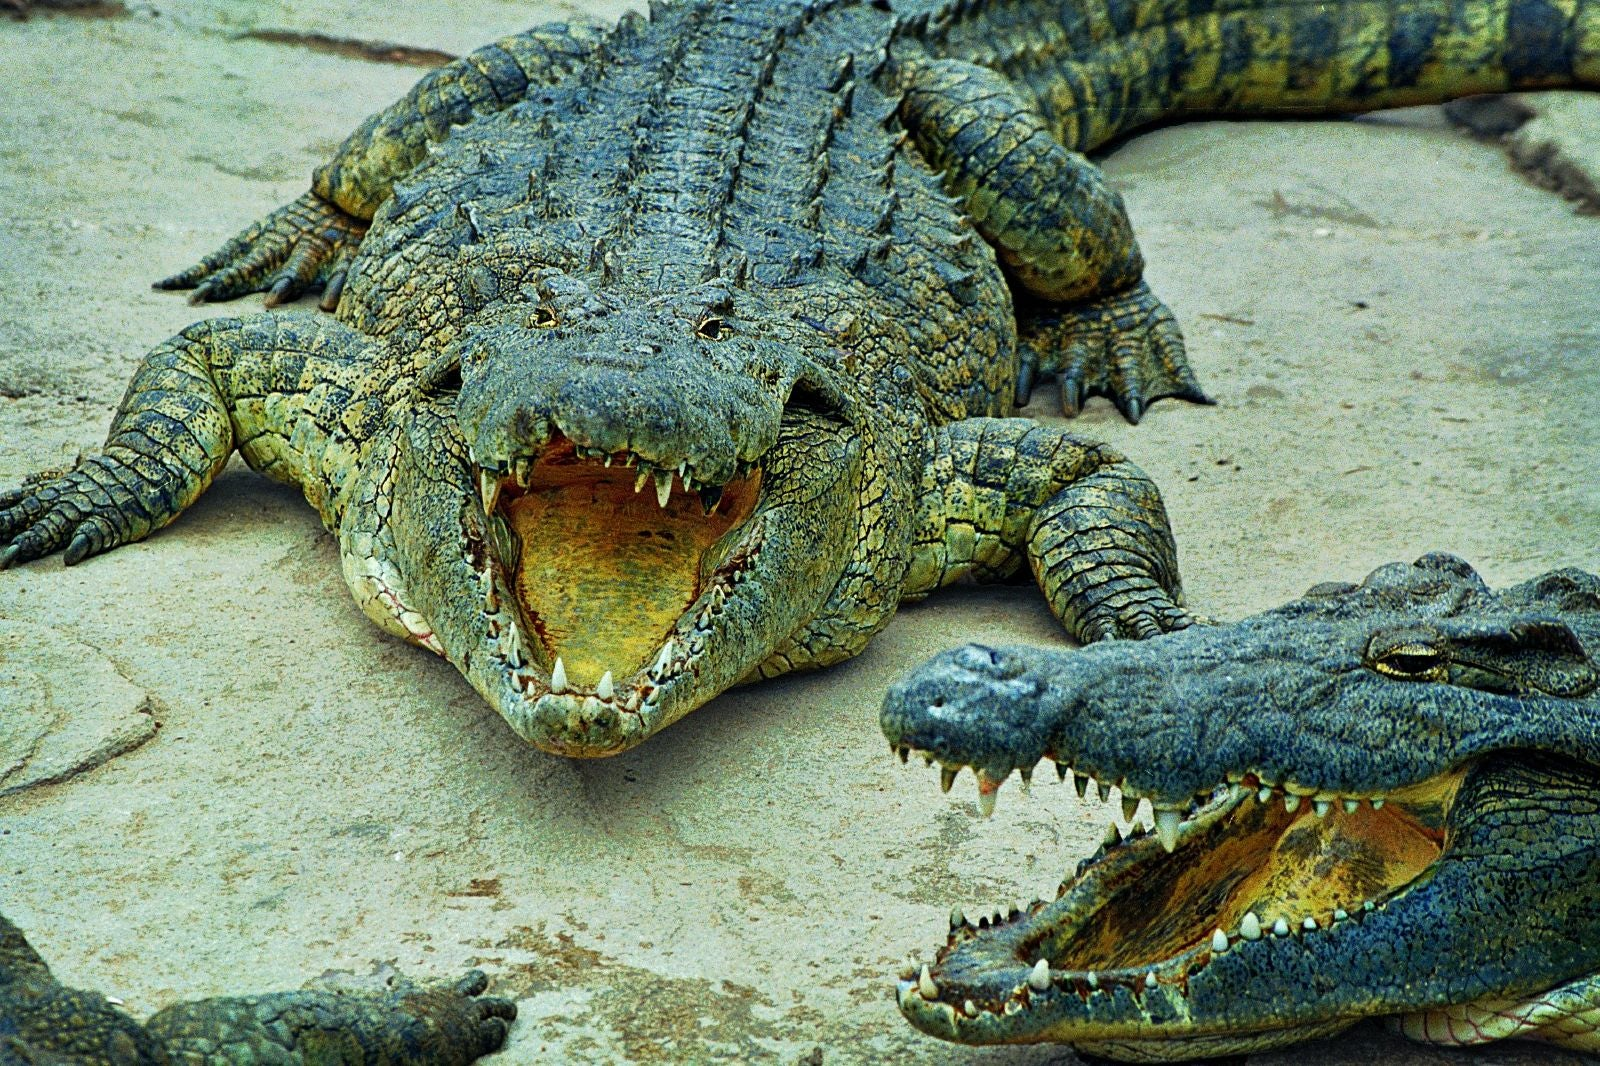 Sacred crocodiles at Presidential Palace